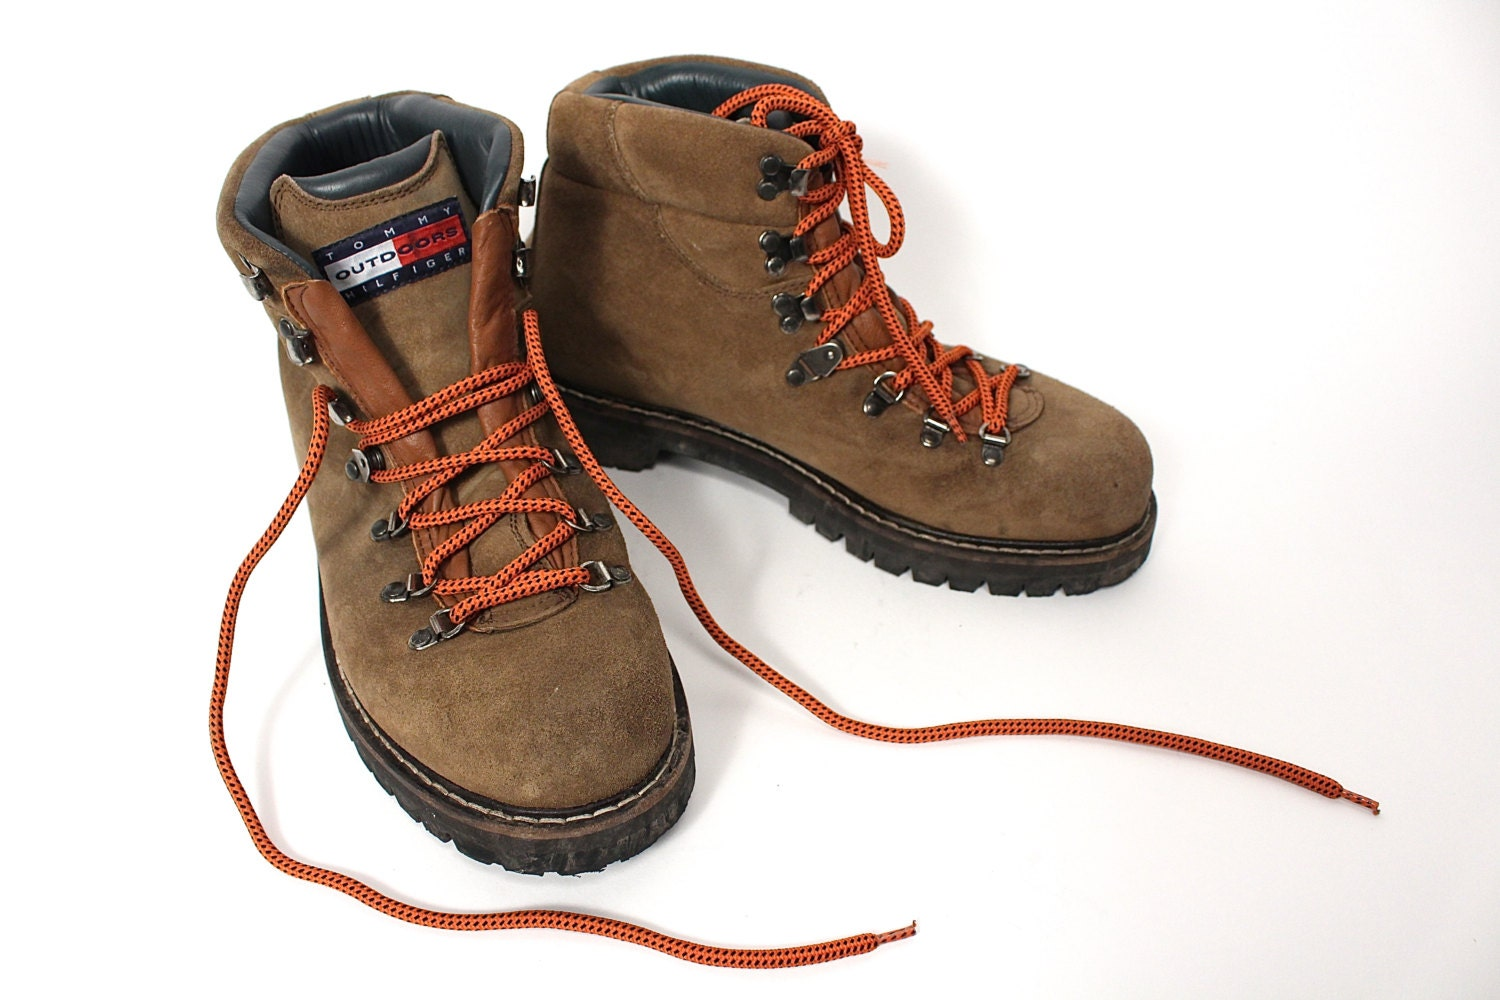 tommy hilfiger hiking boots 90s tommy hilfiger brown suede. Black Bedroom Furniture Sets. Home Design Ideas